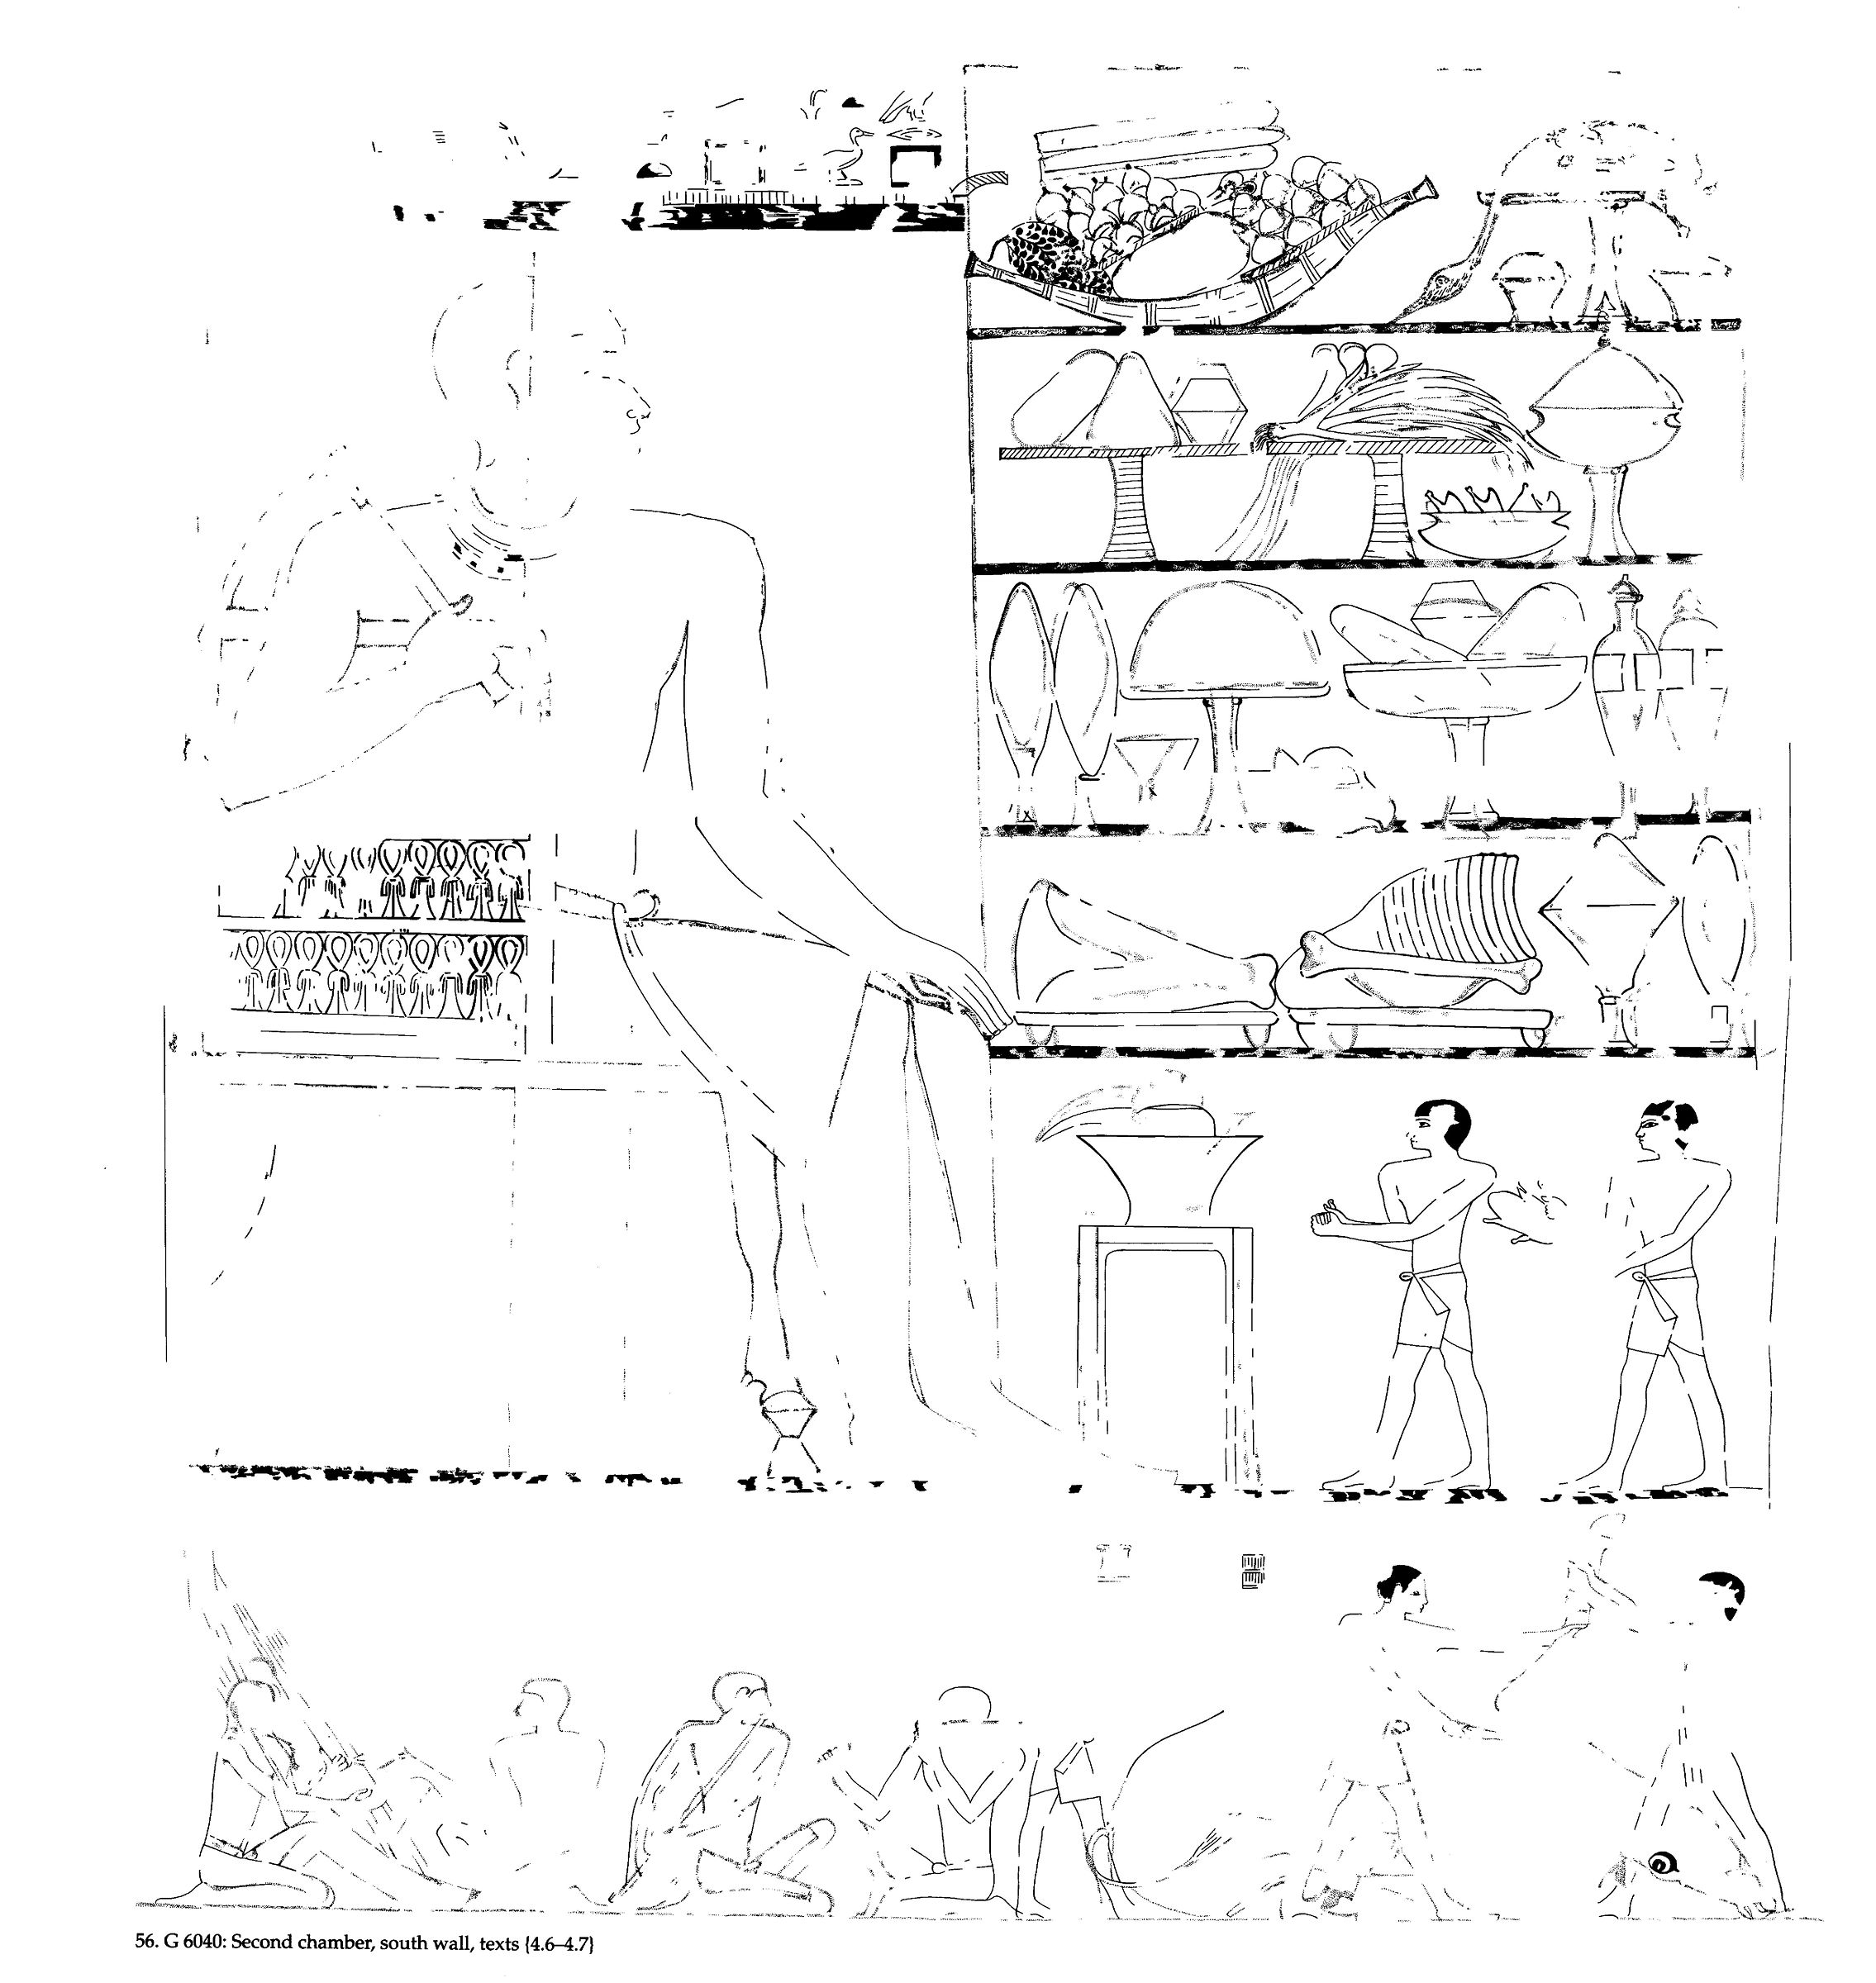 Drawings:  6040: relief from second chamber, S wall